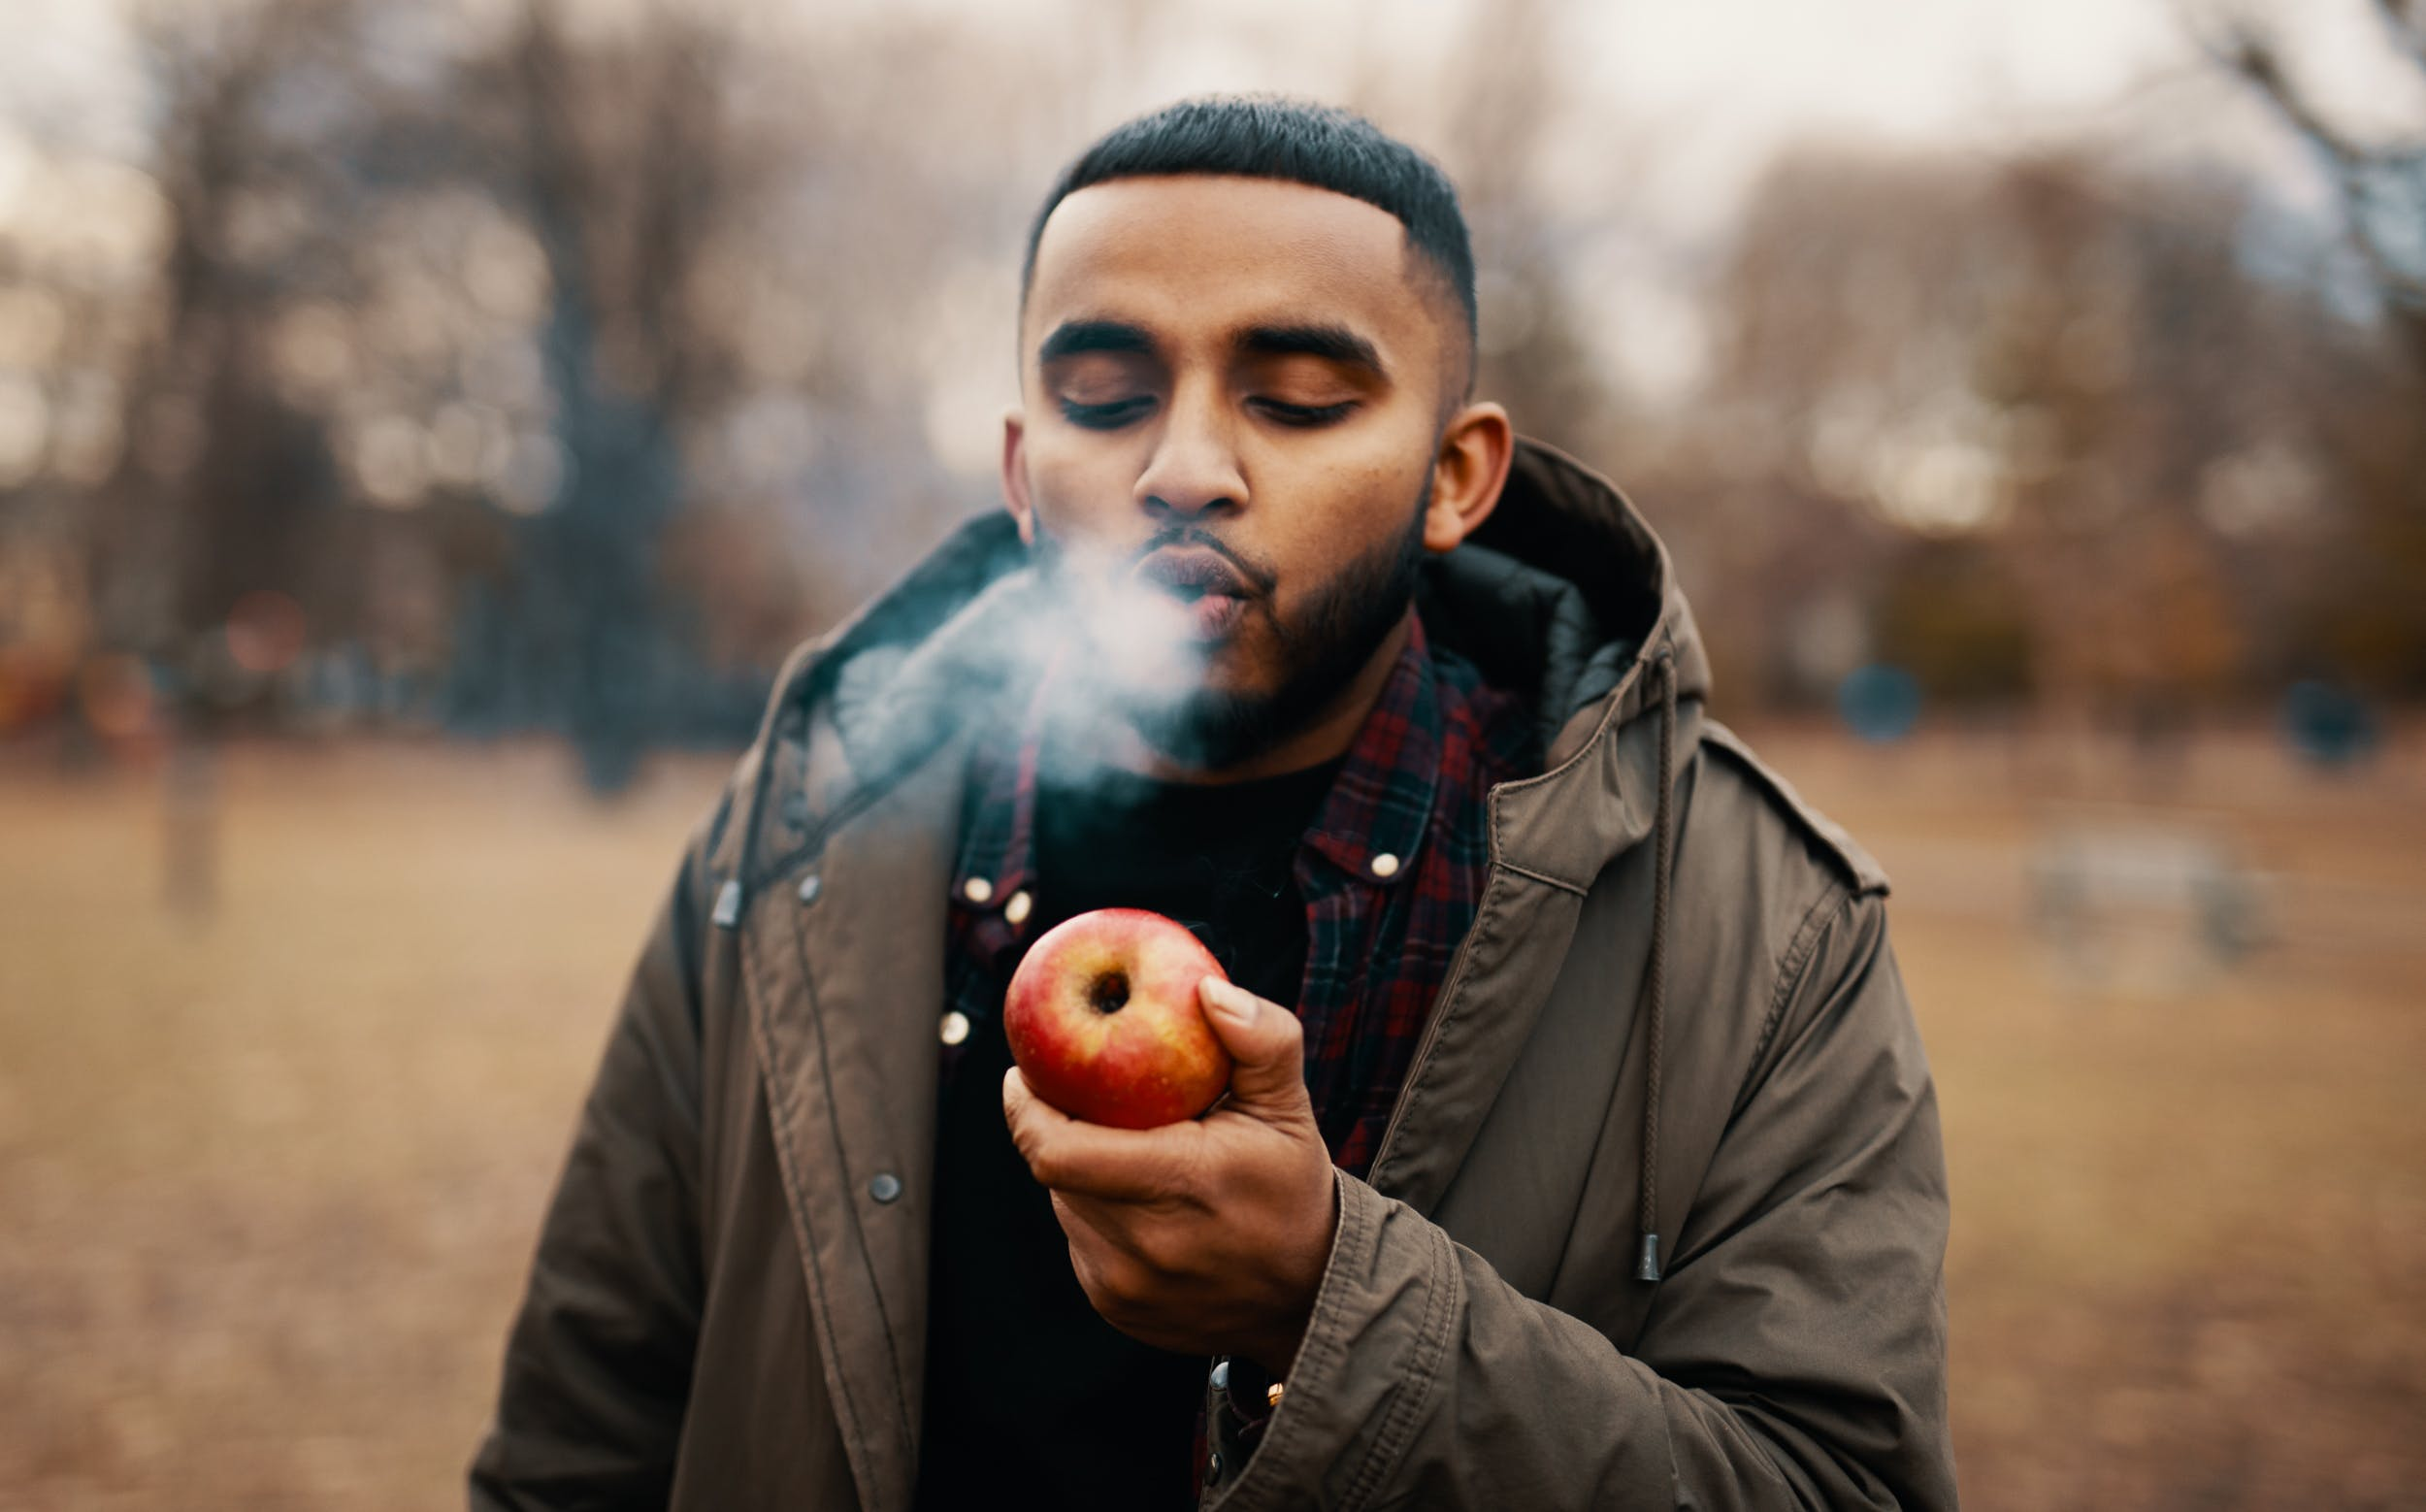 A man learns how to make an apple pipe with our how to make an apple pipe guide